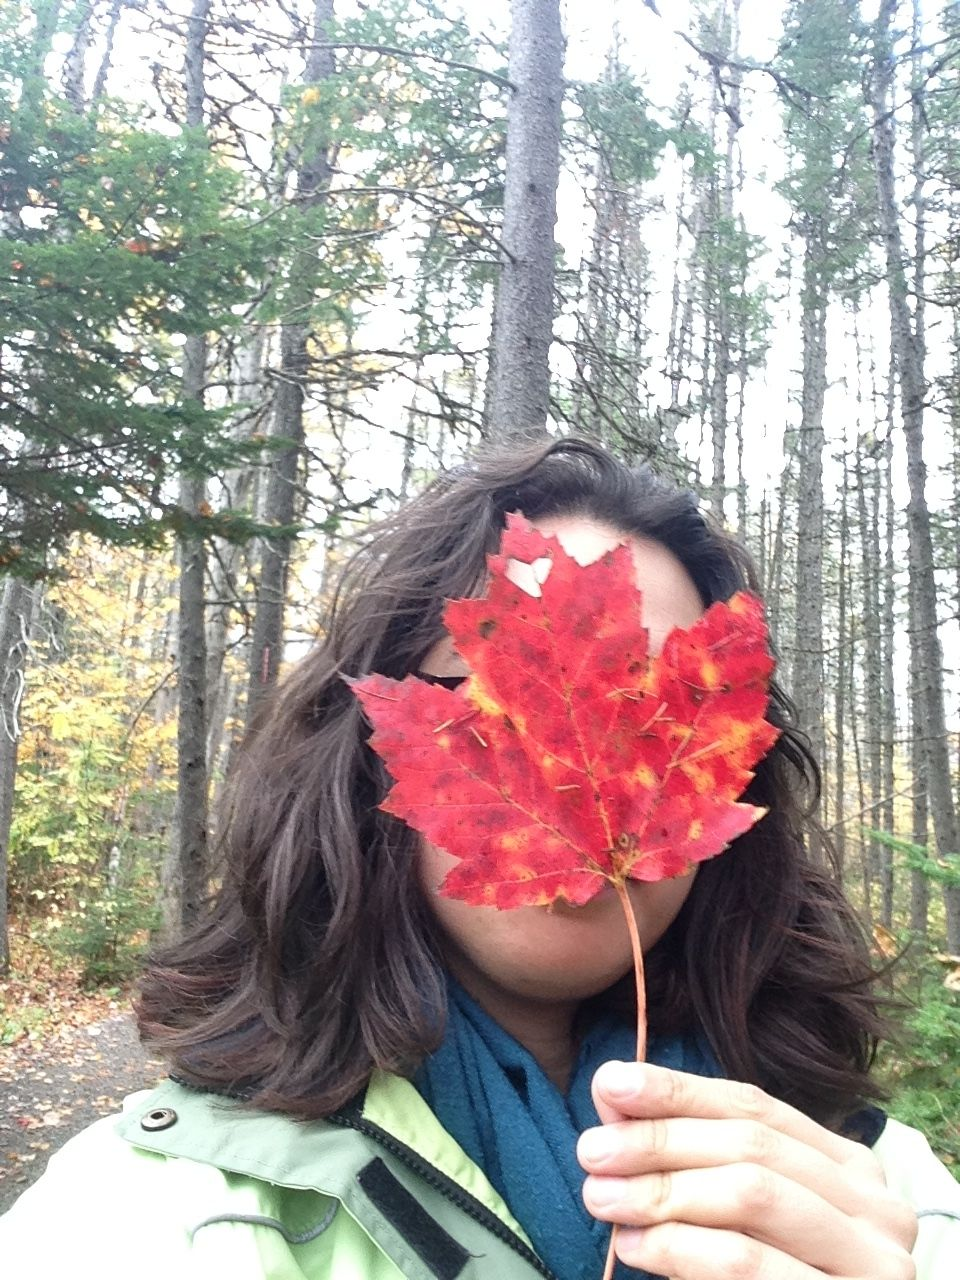 Nature, man. It's the best. That's why hipsters take photos of leaves in front of their faces, right?